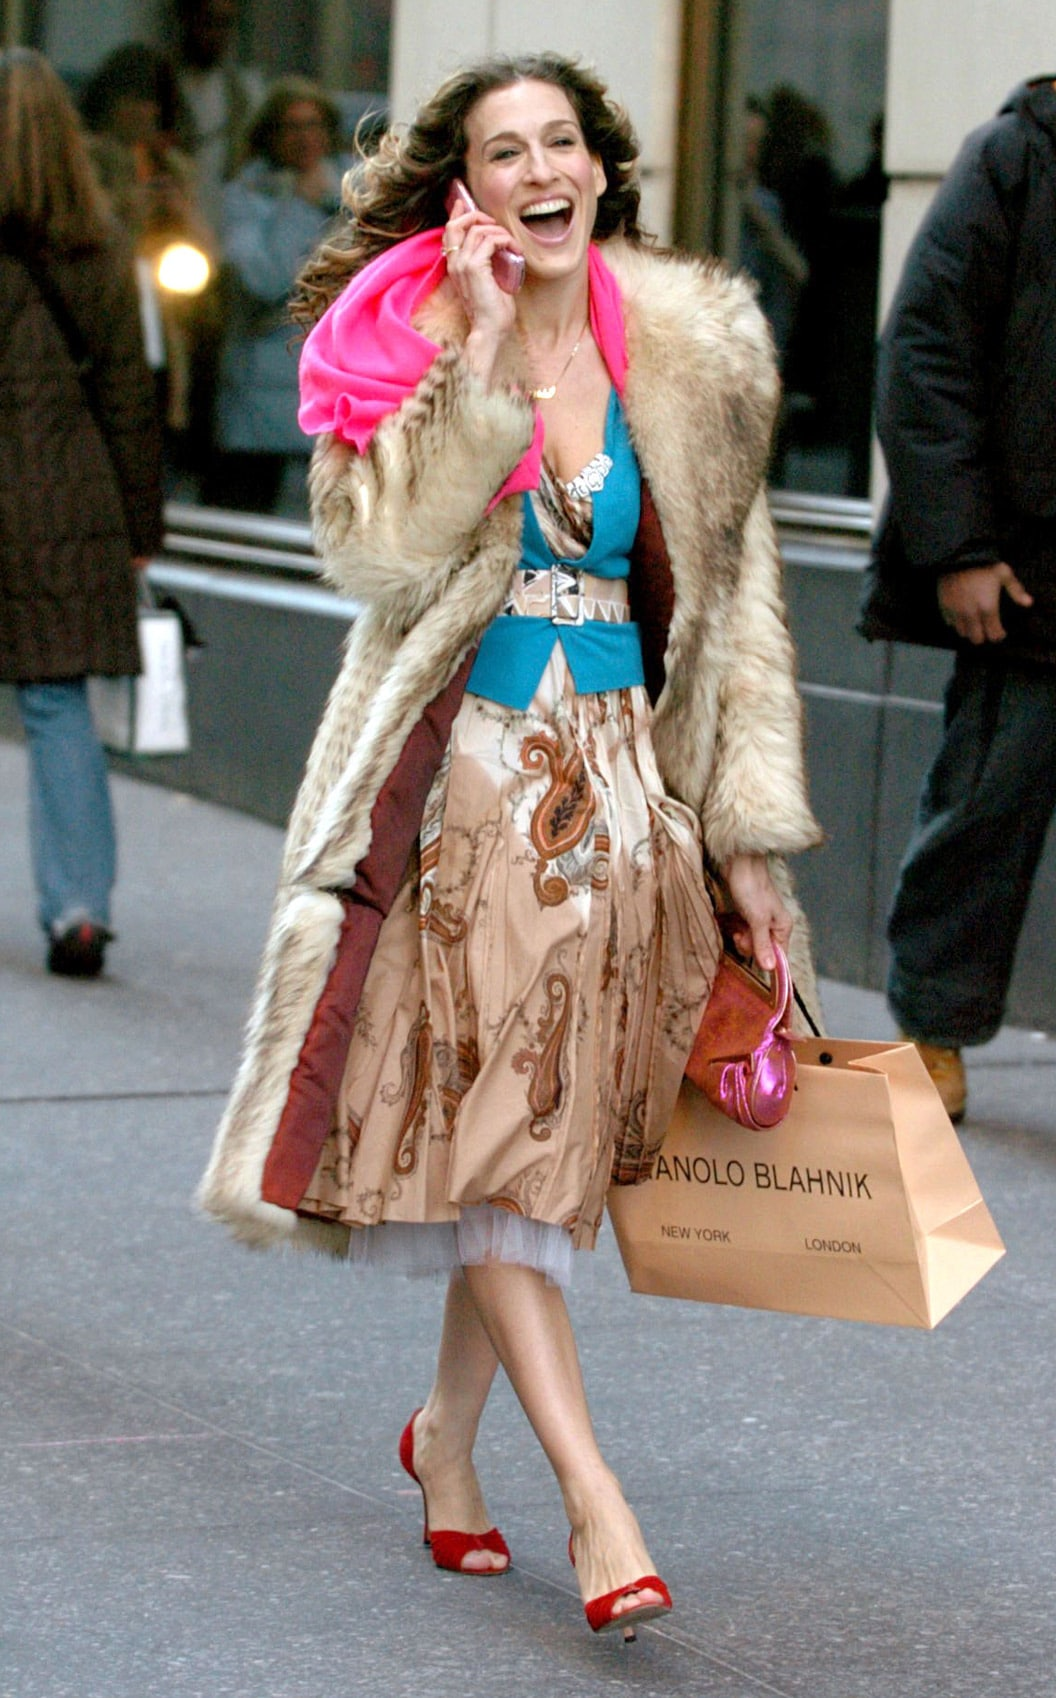 Carrie-Bradshaw-in-her-beloved-Manolos-in-Sex-and-the-City-CREDIT-REX